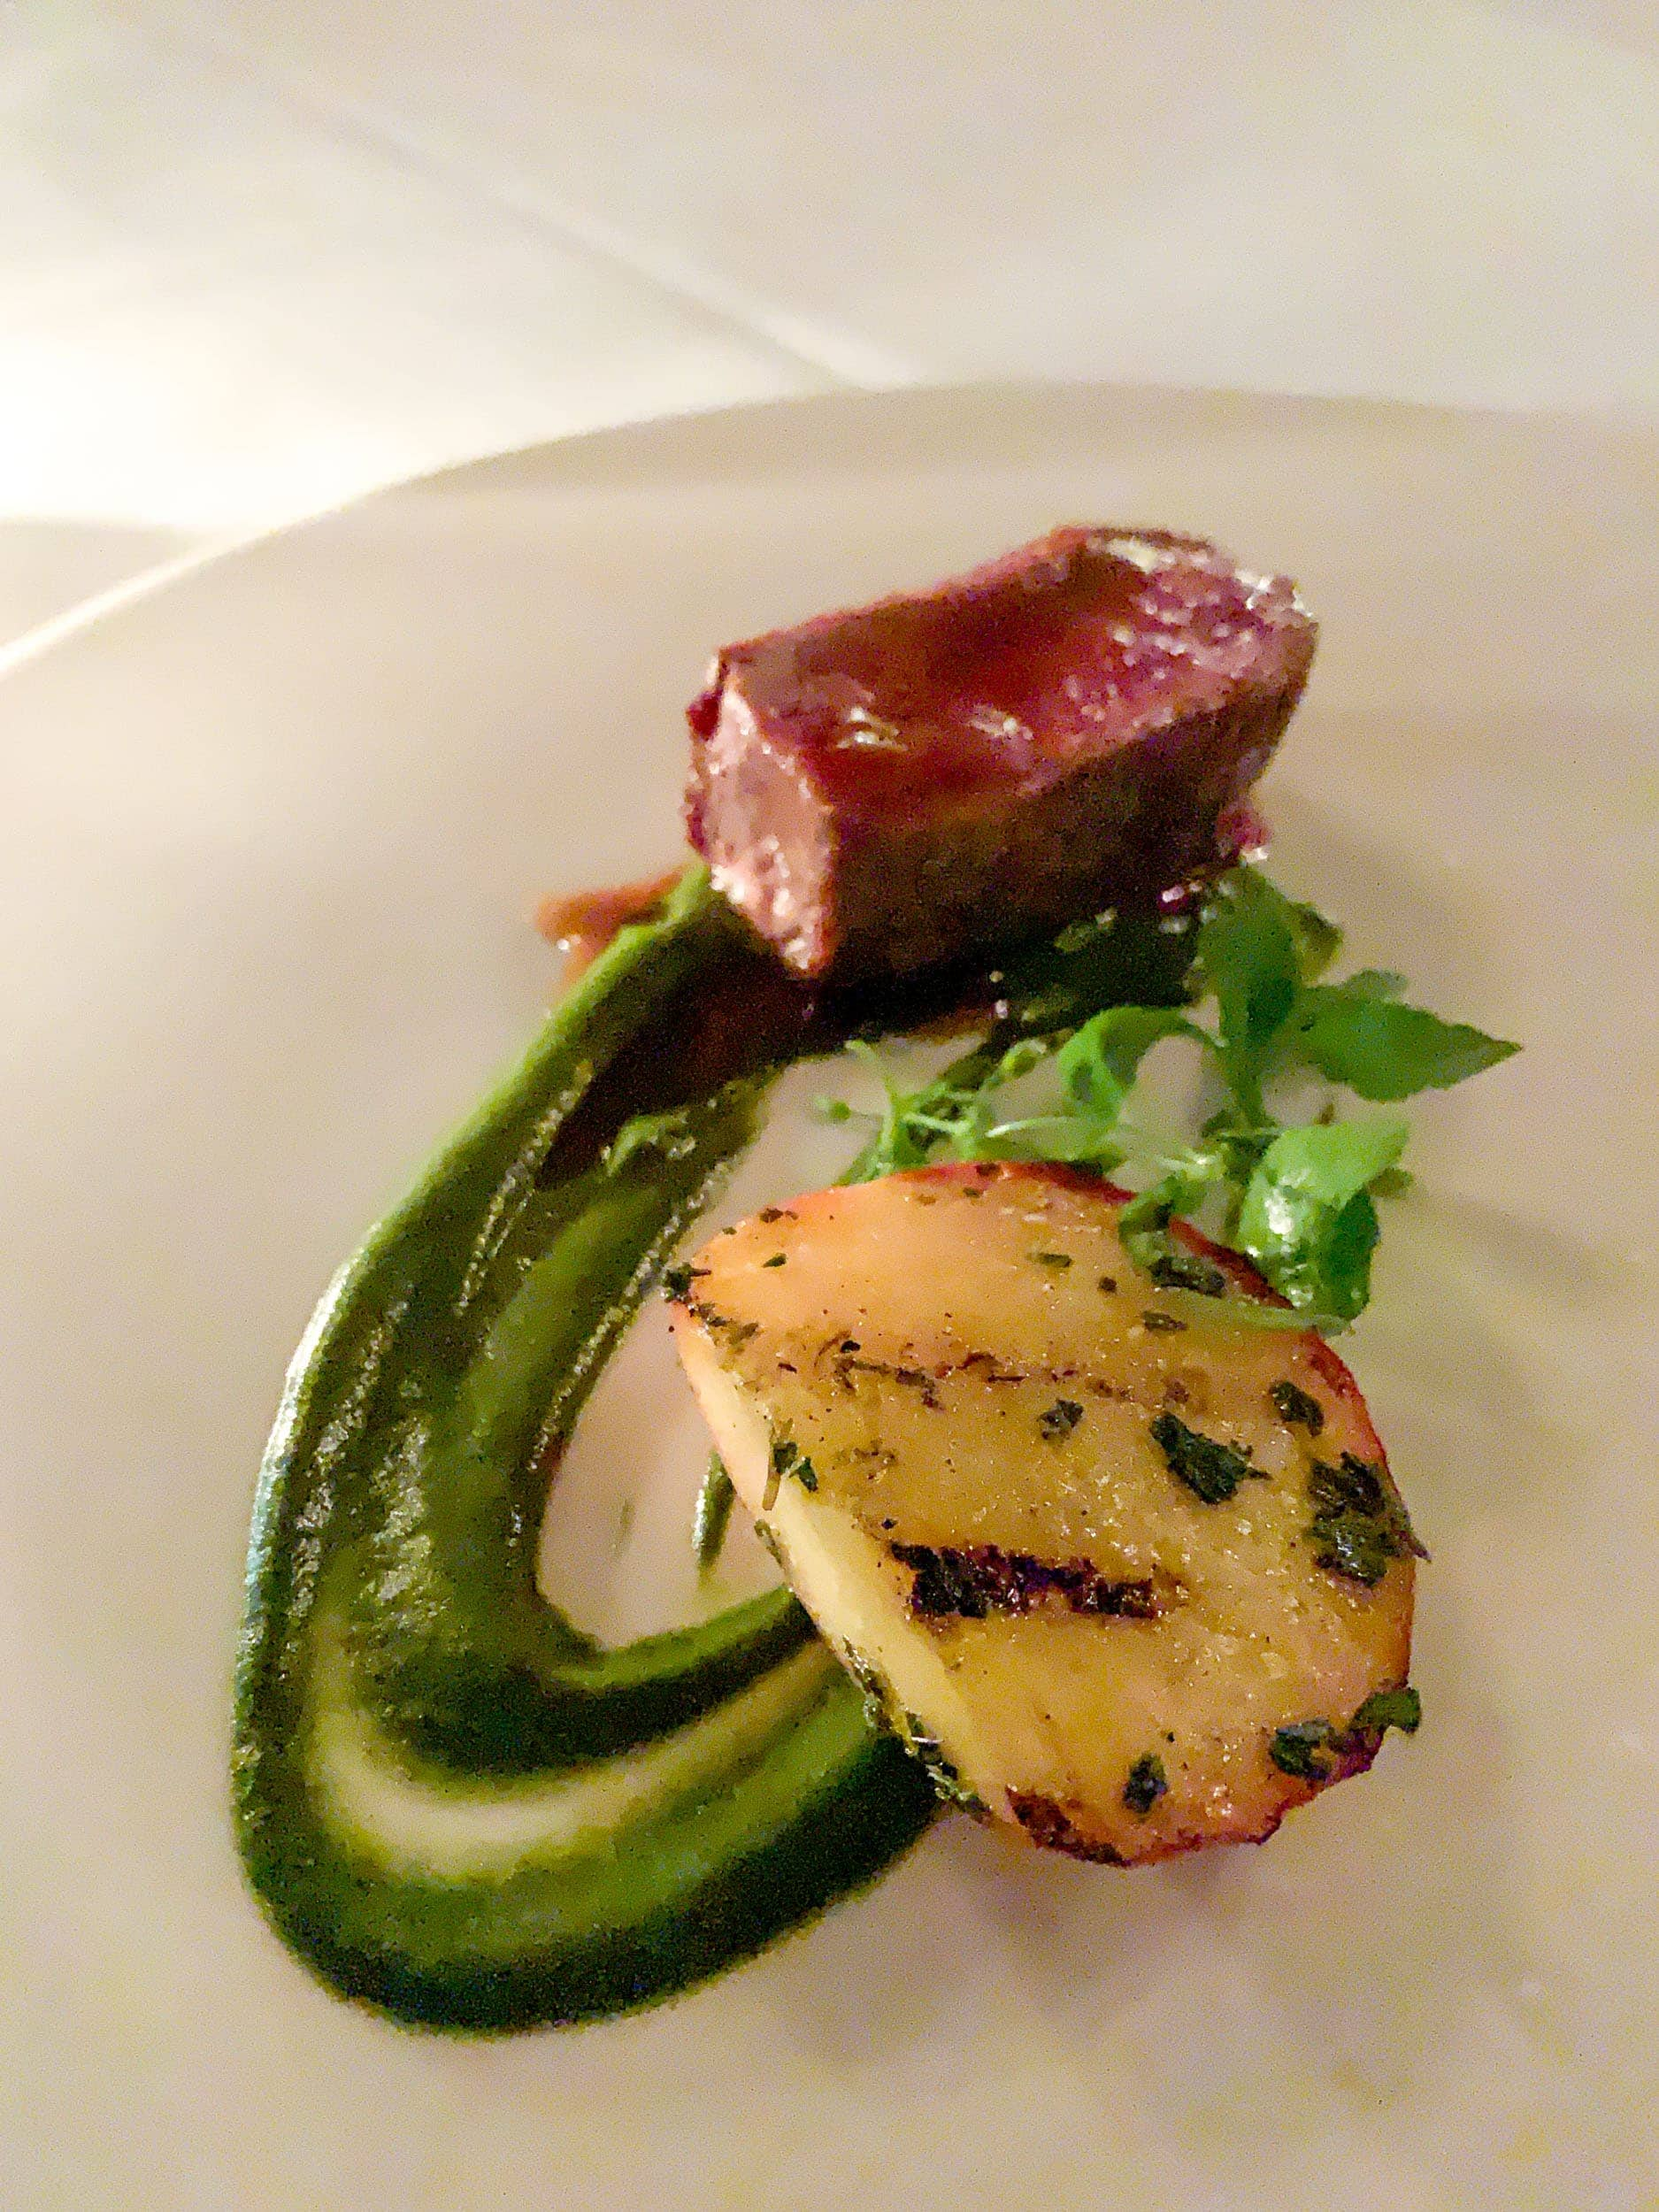 Colorado lamb loin with grilled stone fruit, stinging nettles, and tarragon